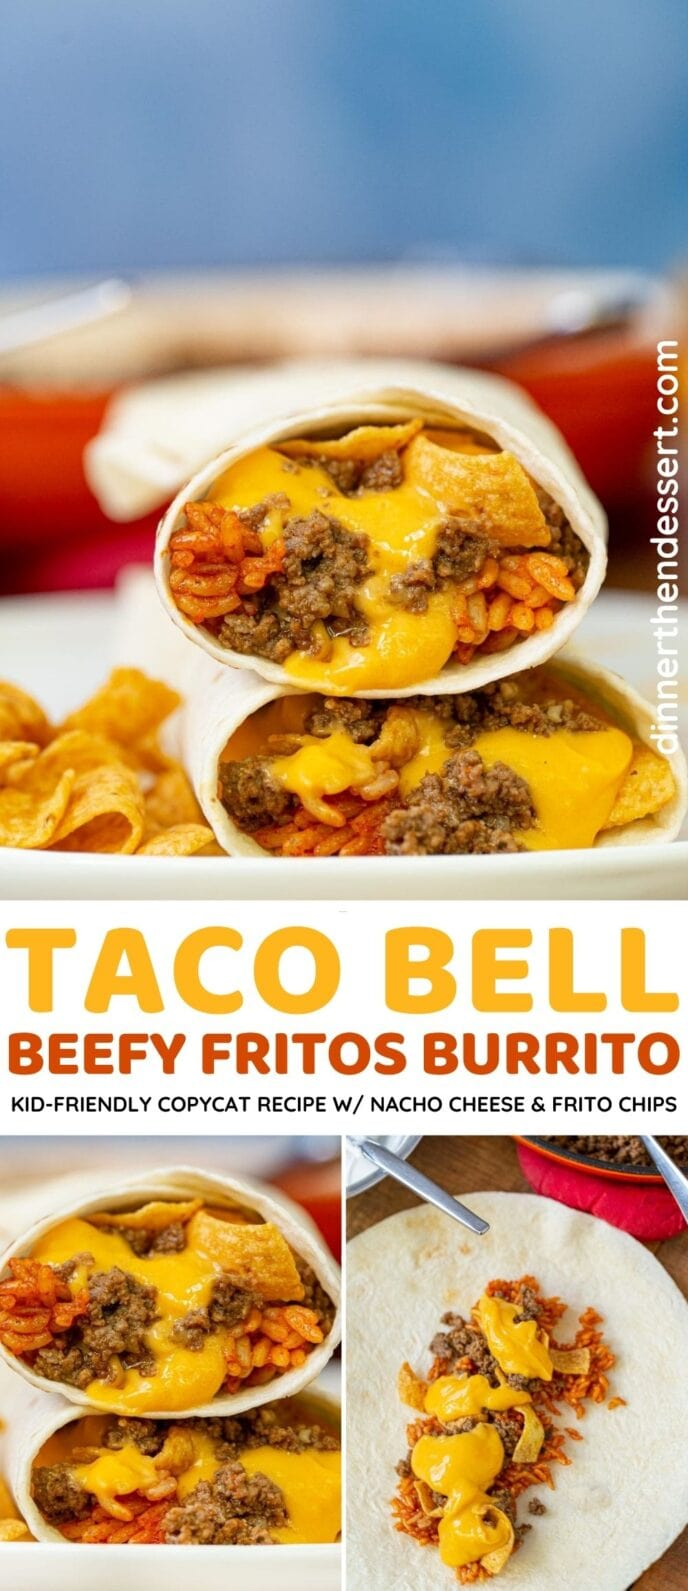 Taco Bell Beefy Fritos Burrito collage